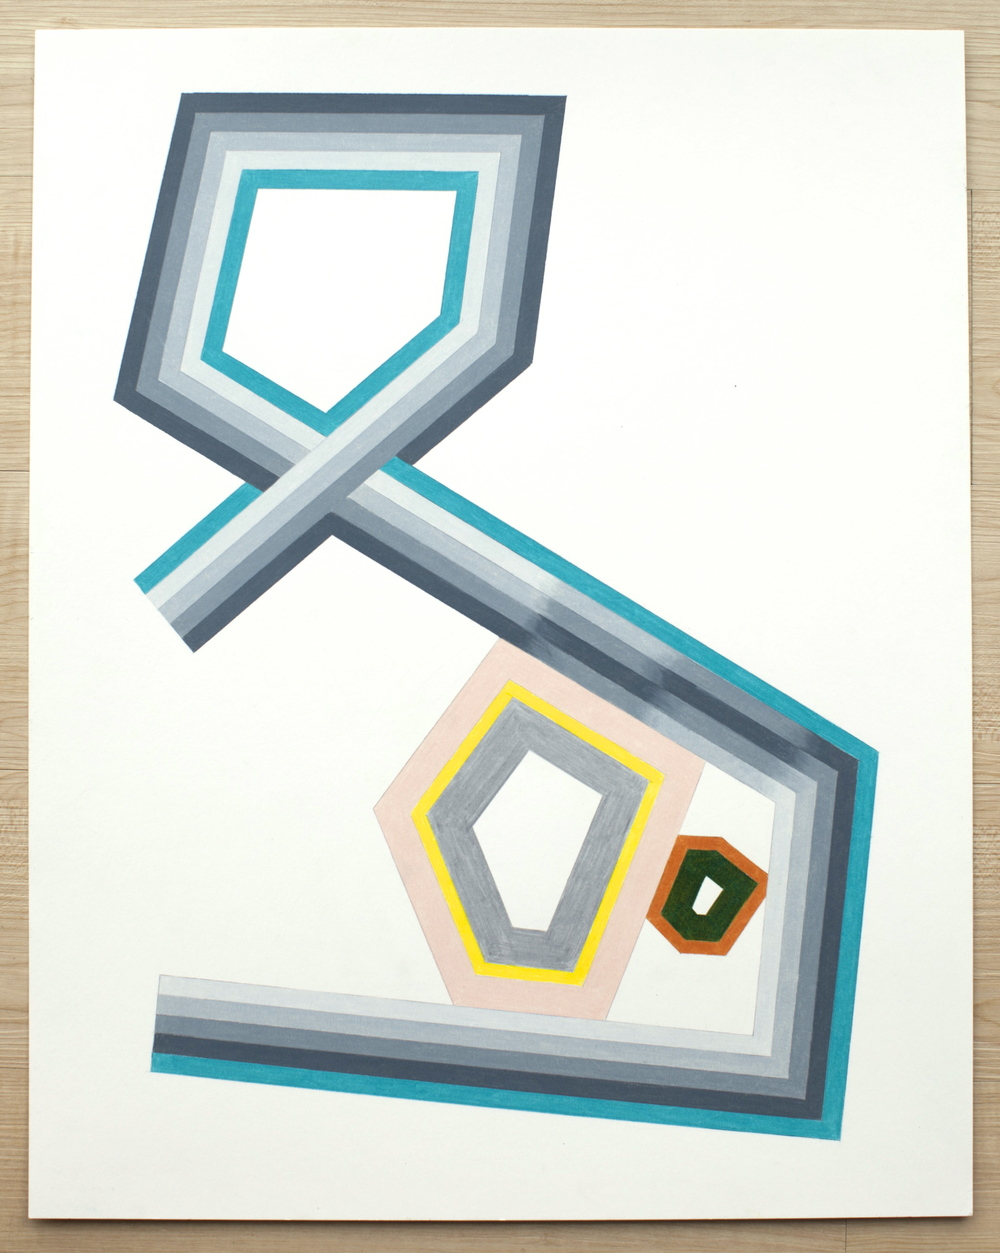 Untitled (Sheltered Polygons), 2015, colored pencil on paper, 24 x 19 inches